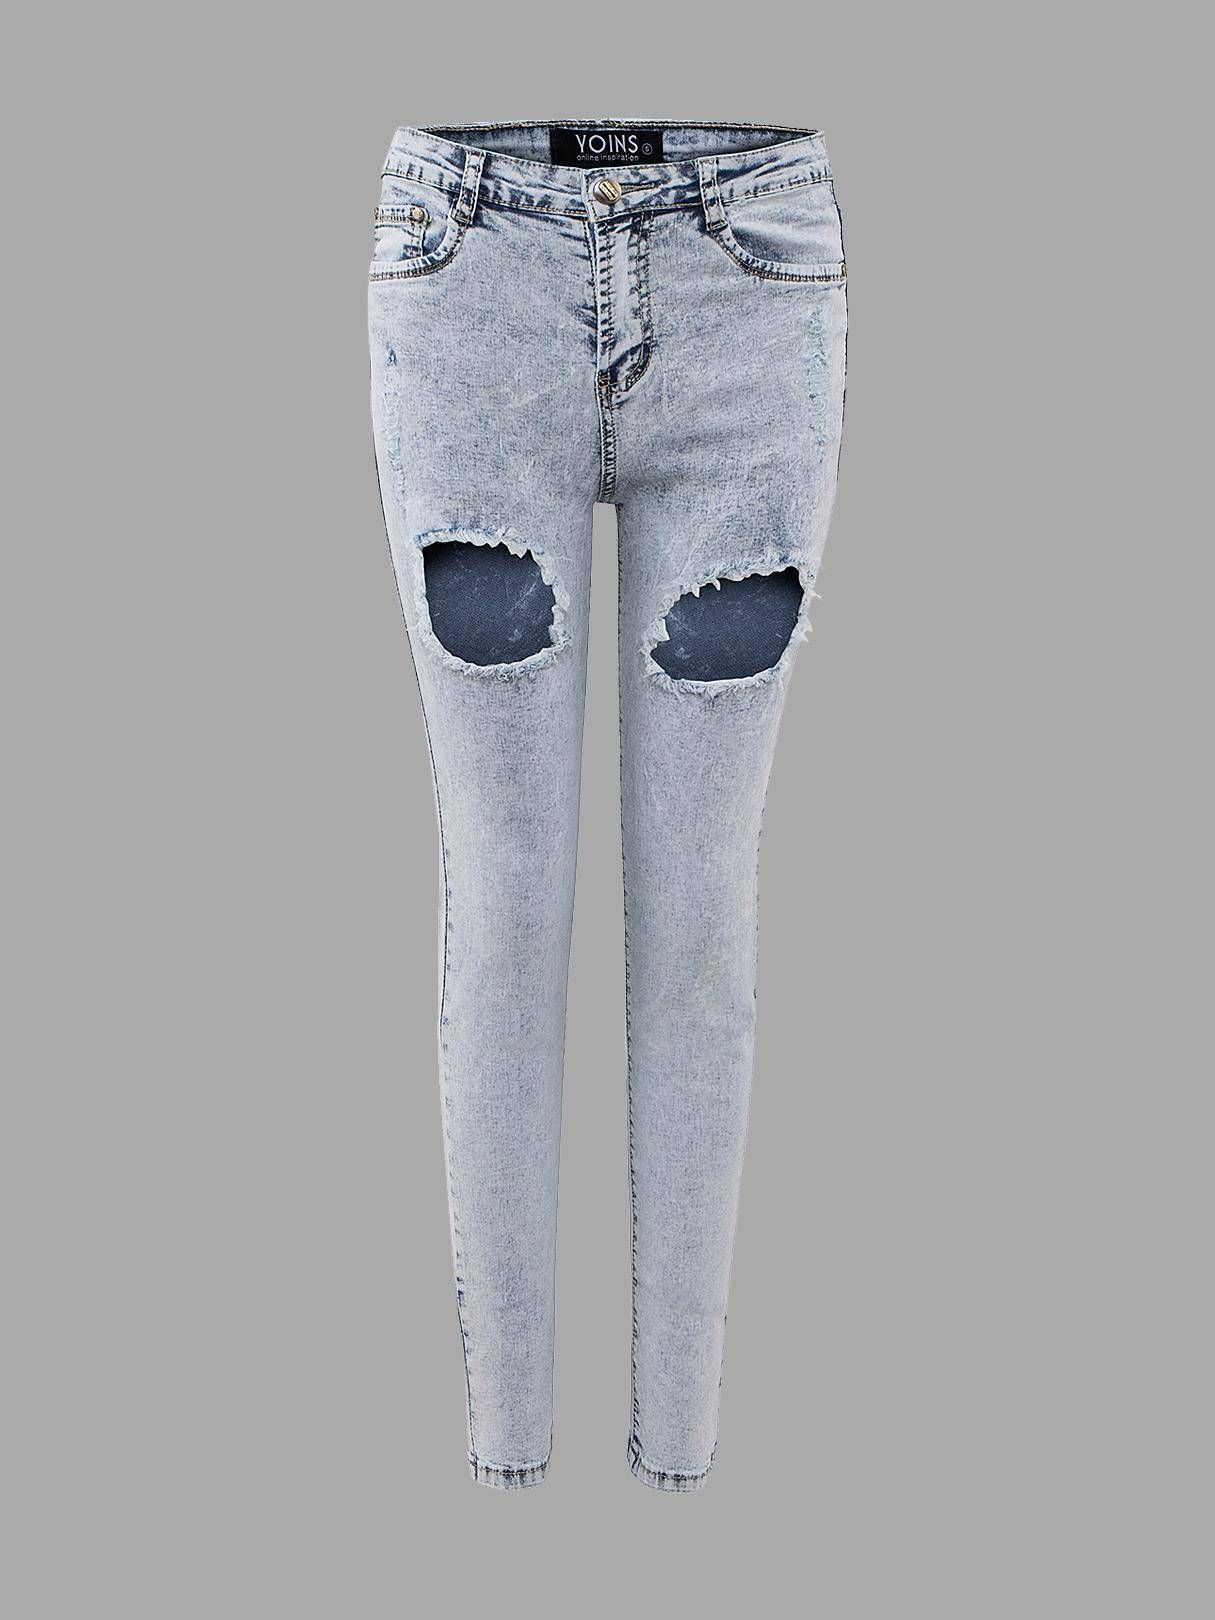 66d8691b87d666 Skinny Jeans In Light Wash With Open Rips - US 25.95 -YOINS